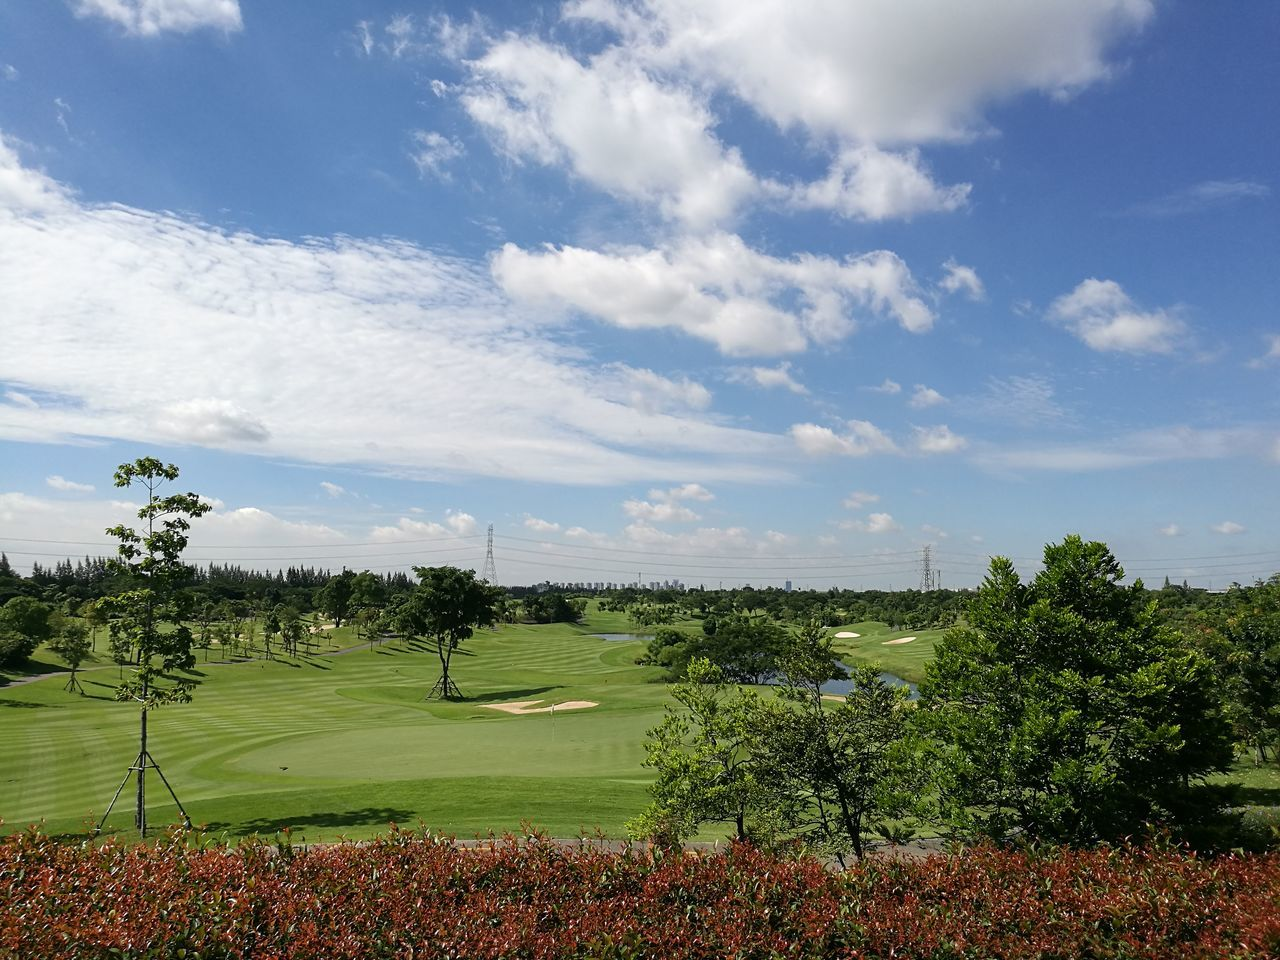 Scenic View Of Golf Course Against Cloudy Sky